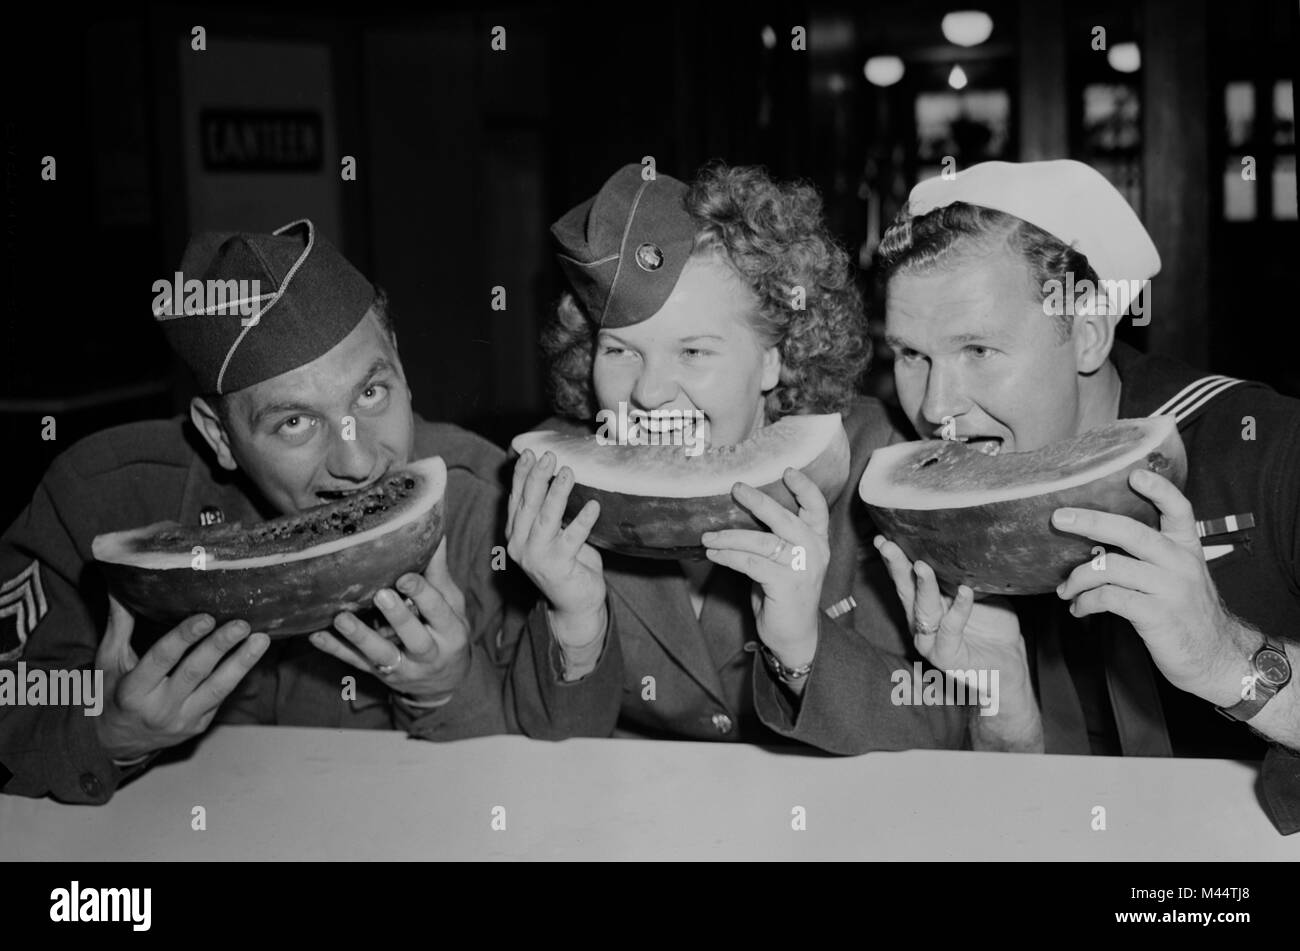 Three U.S. service members chow down on some watermelon, ca. 1945. - Stock Image